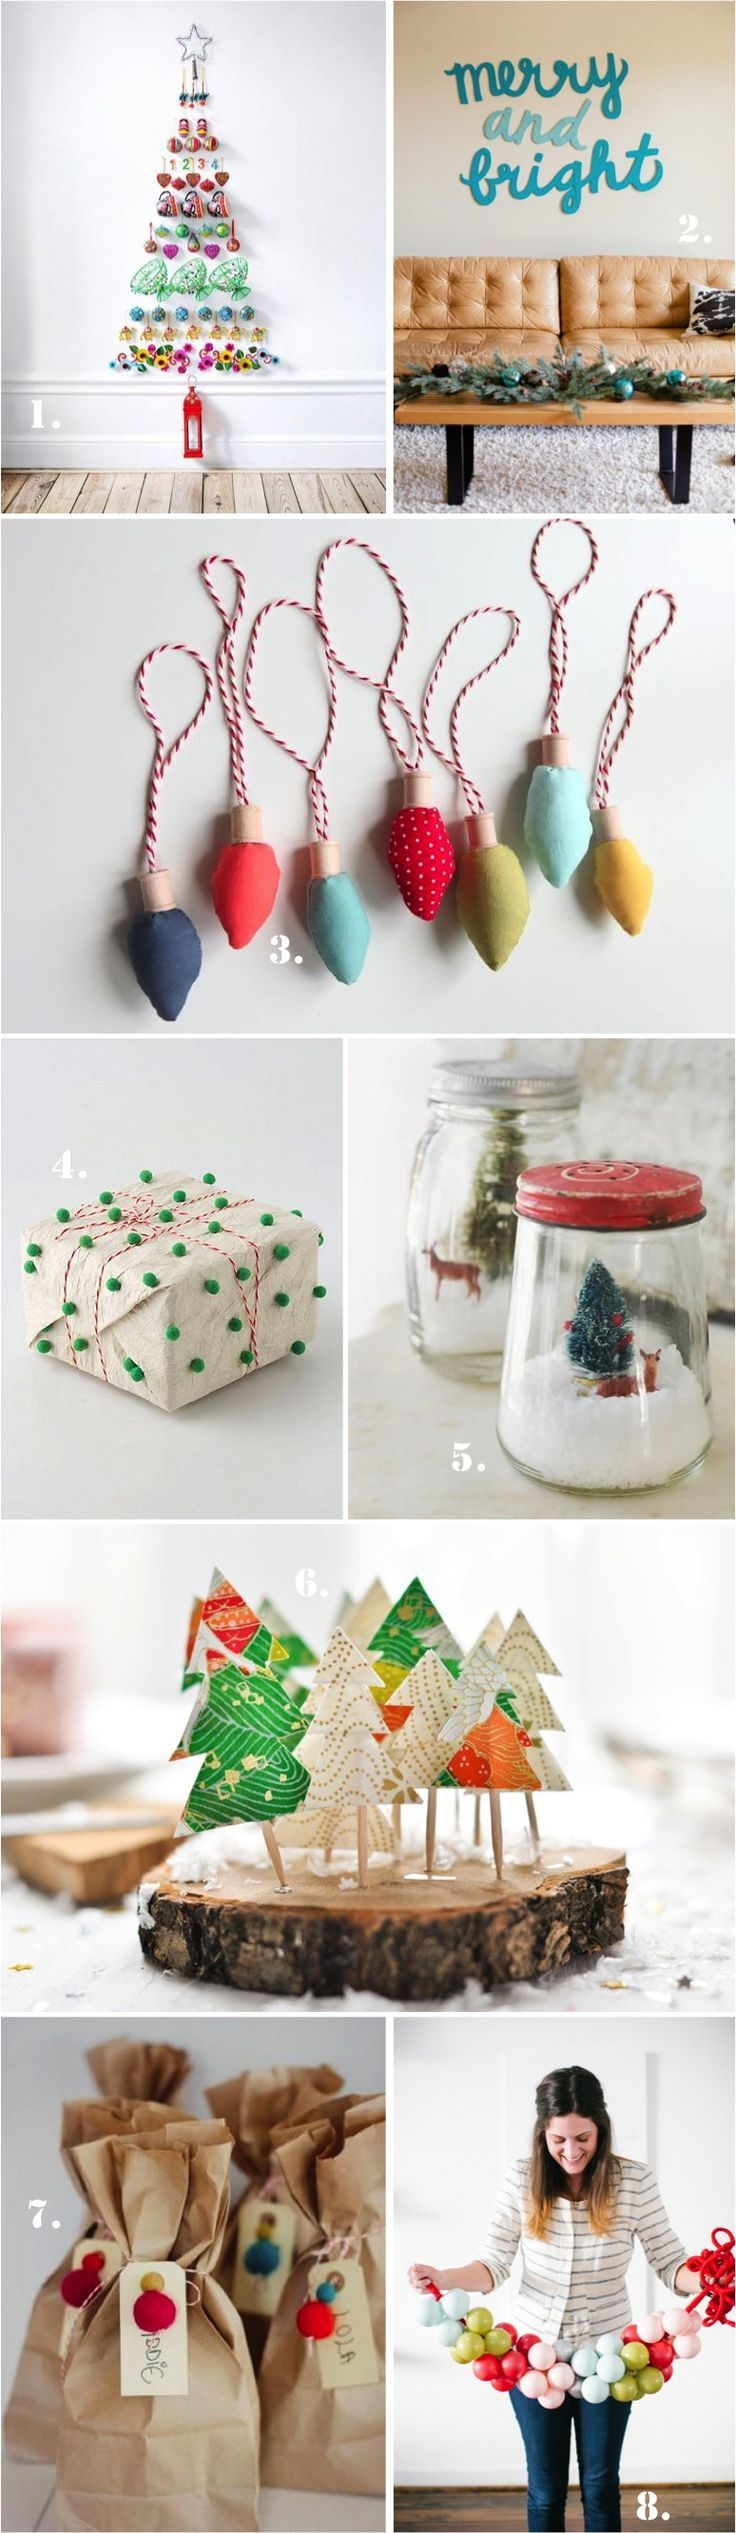 213 best holiday inspiration images on pinterest | at home